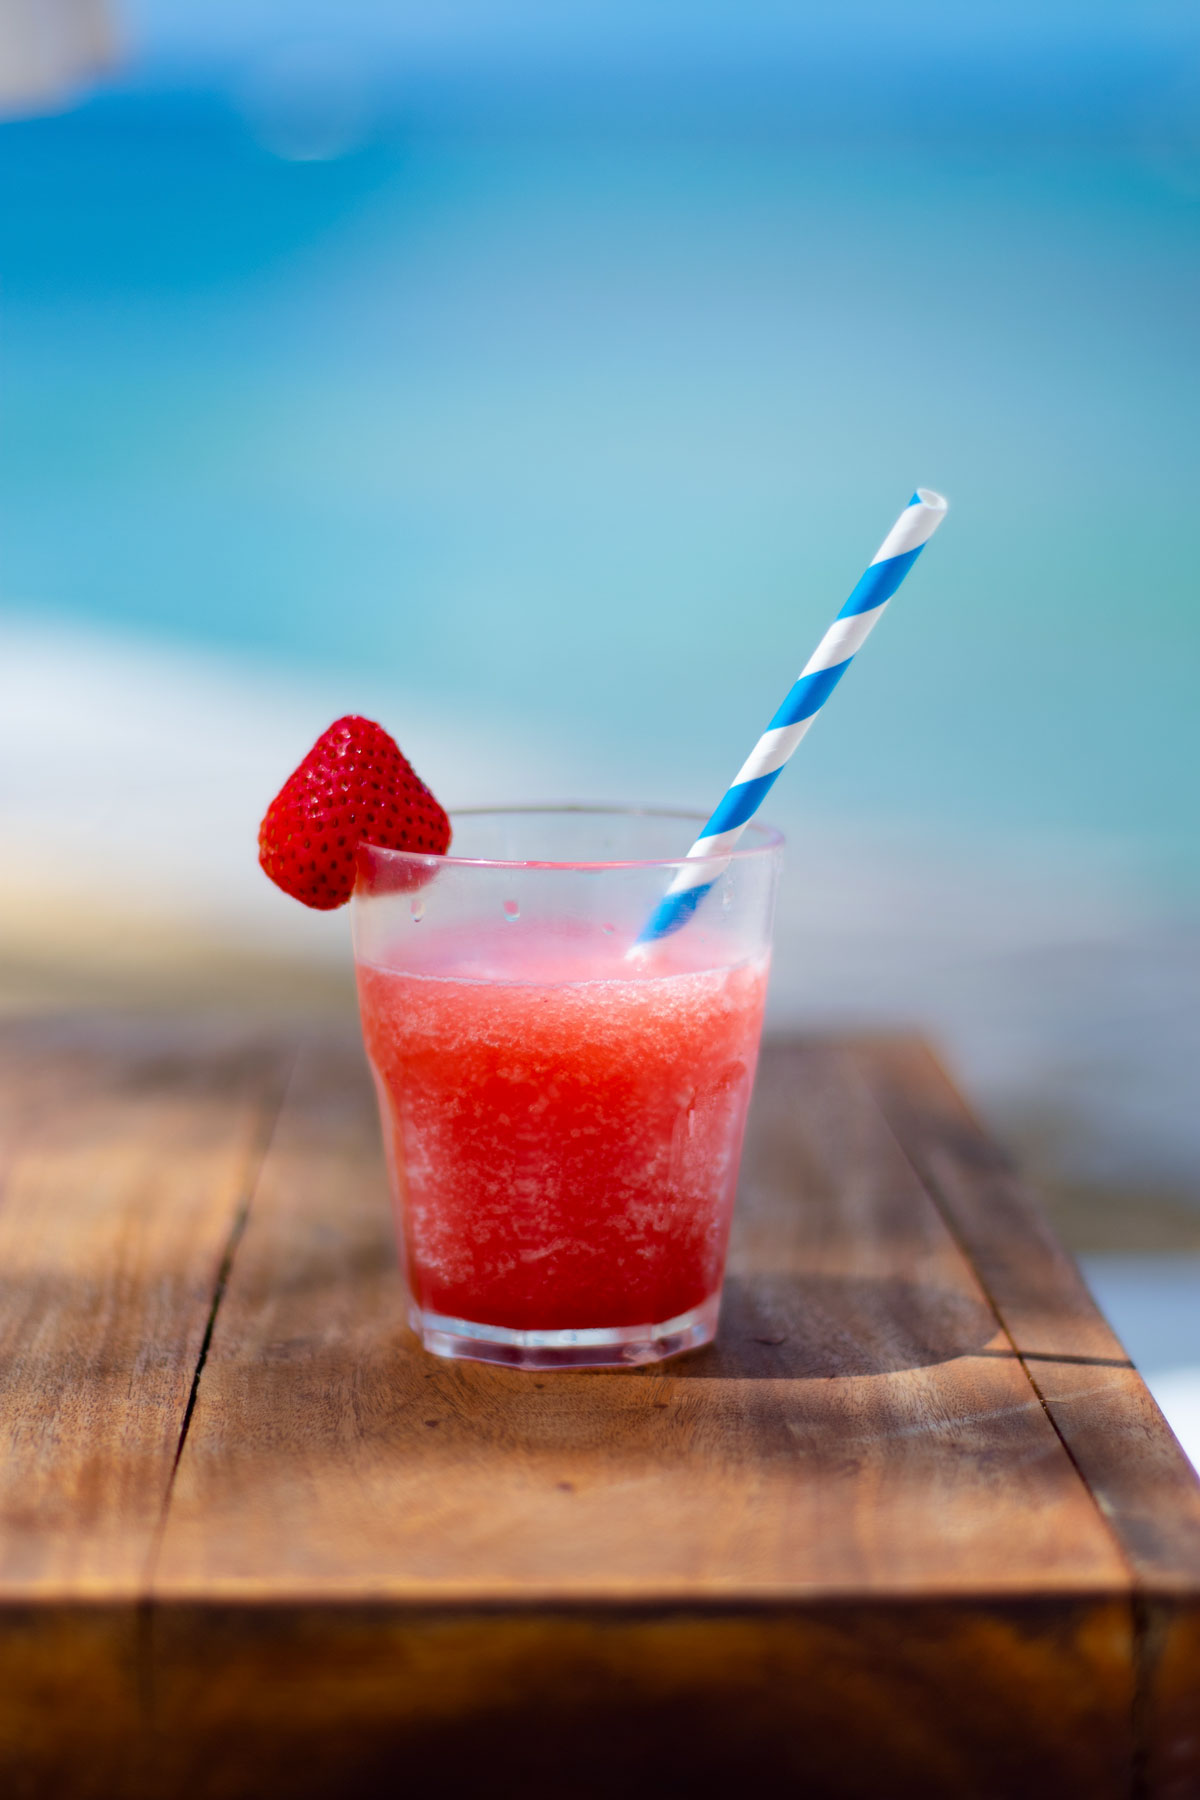 Daiquiri Rum Drinks That Will Impress Your Guests